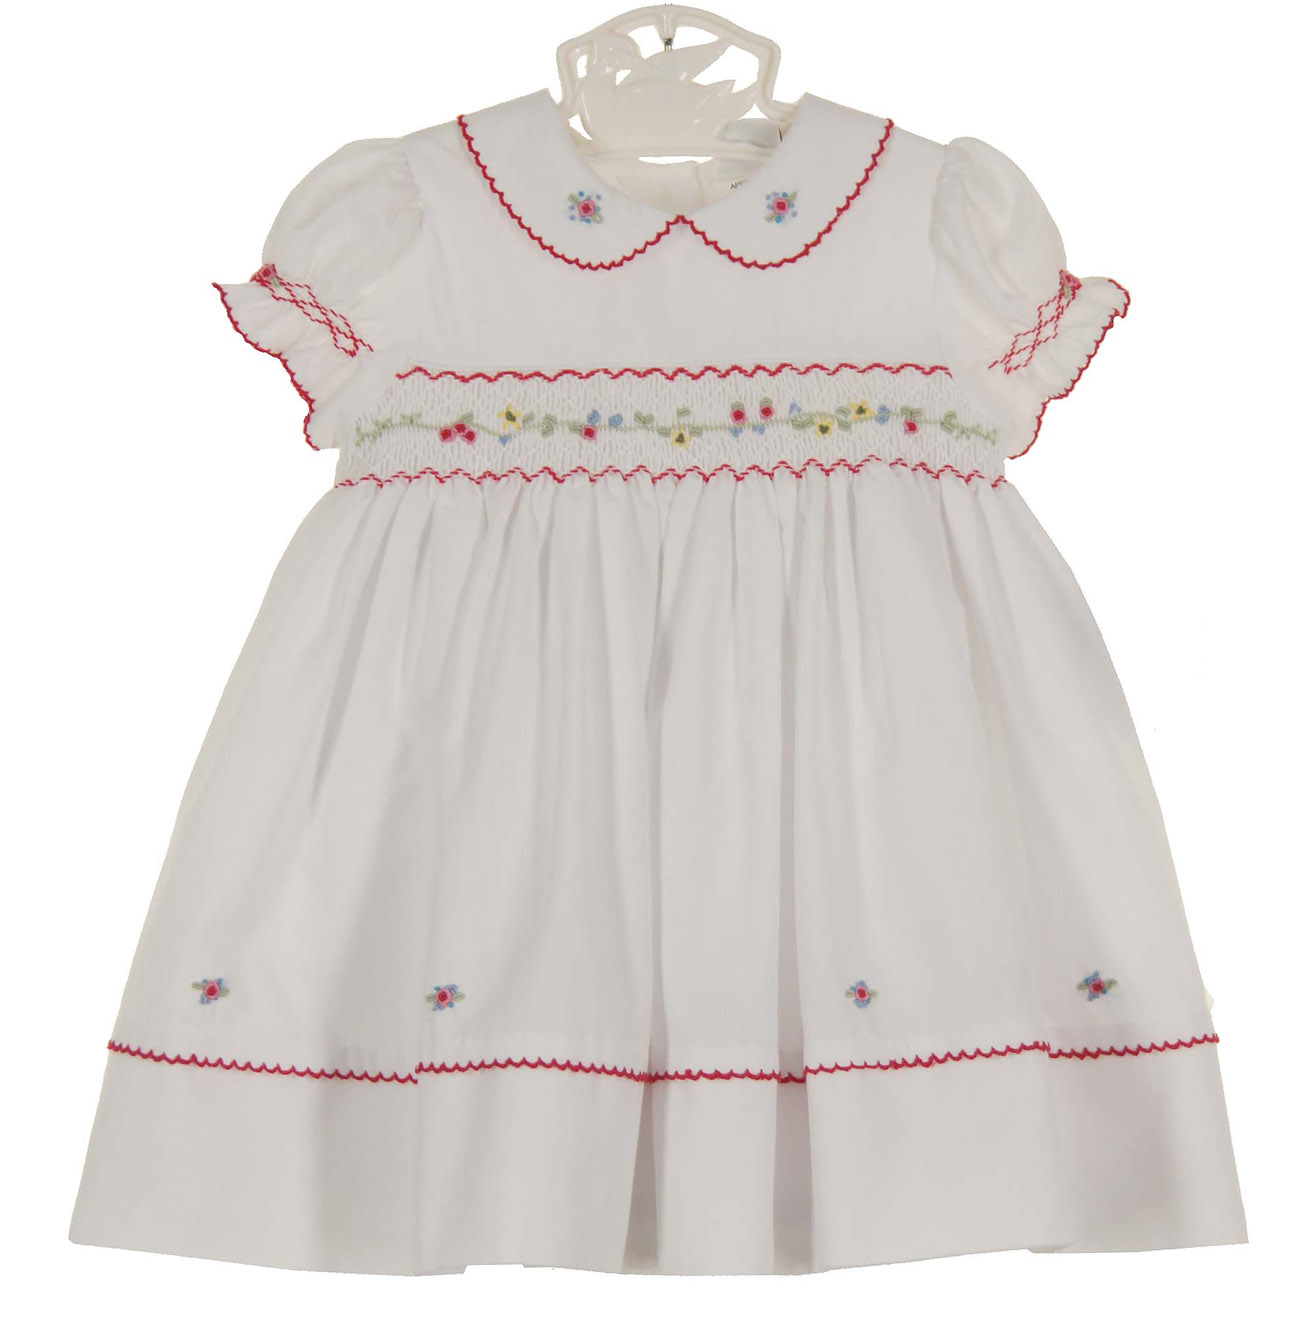 Sarah Louise White Smocked Dress With Red Embroidered Flowersbaby